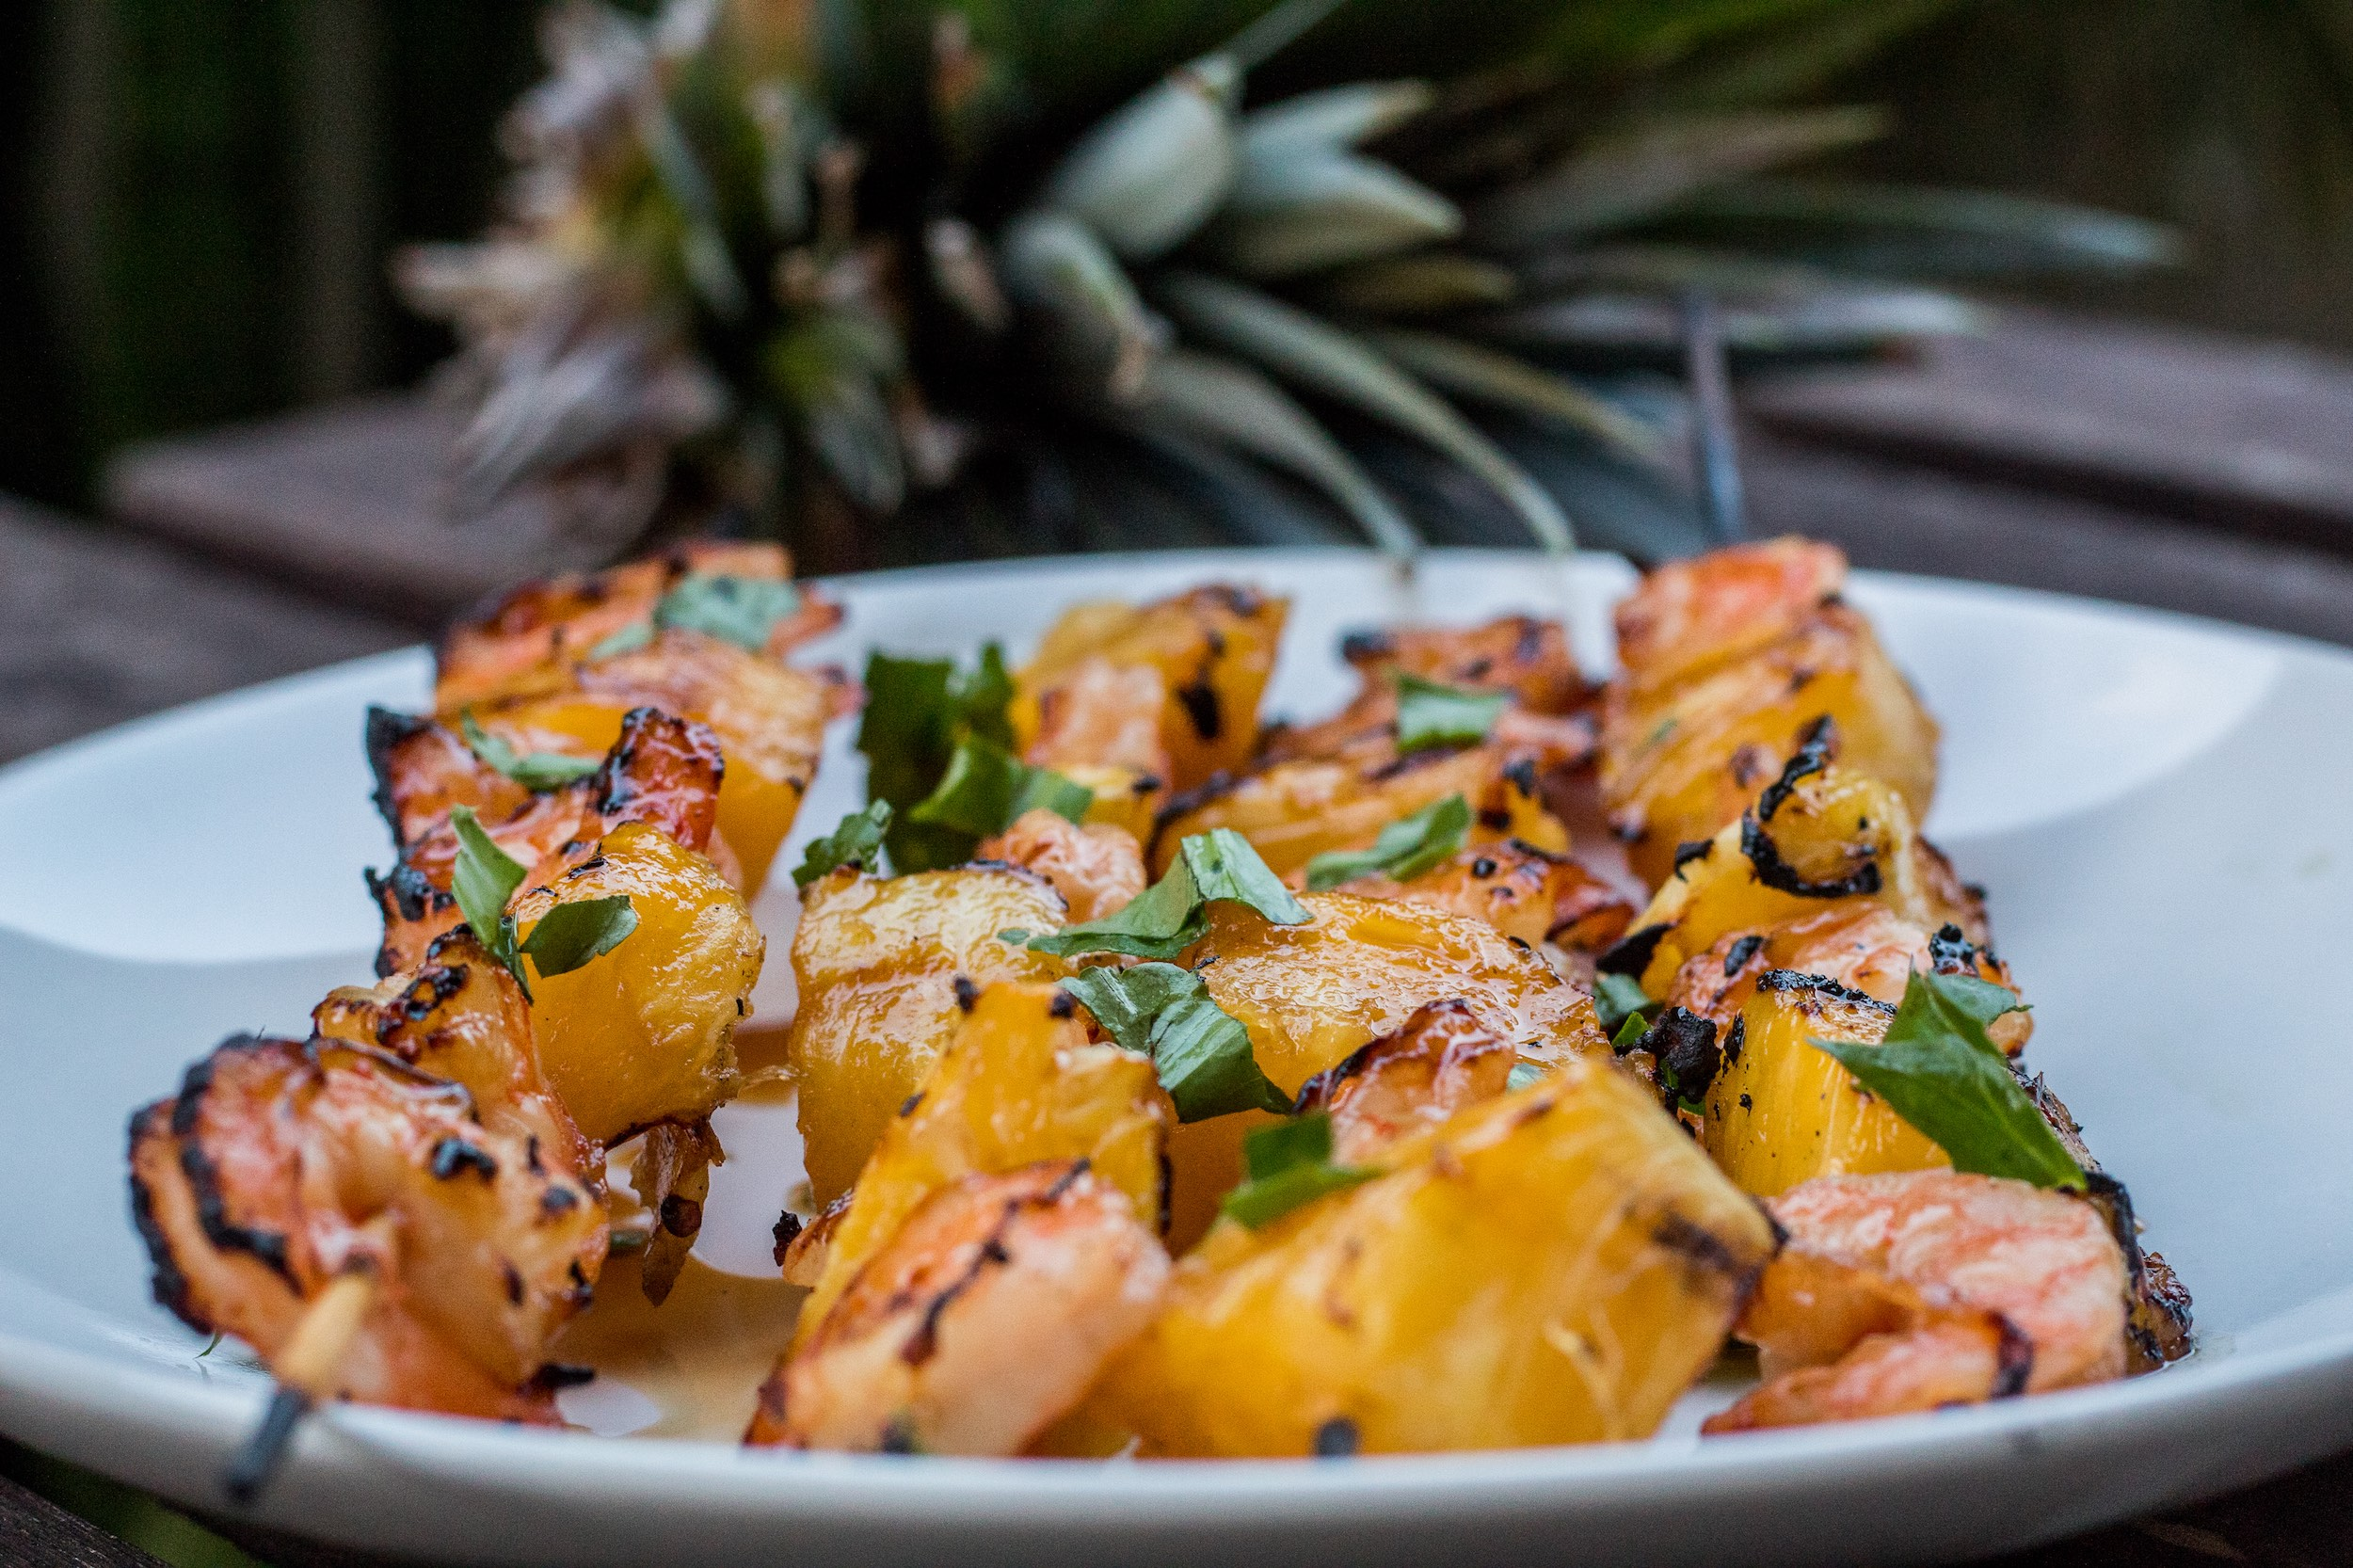 Make it a tropical night with grilled pineapple